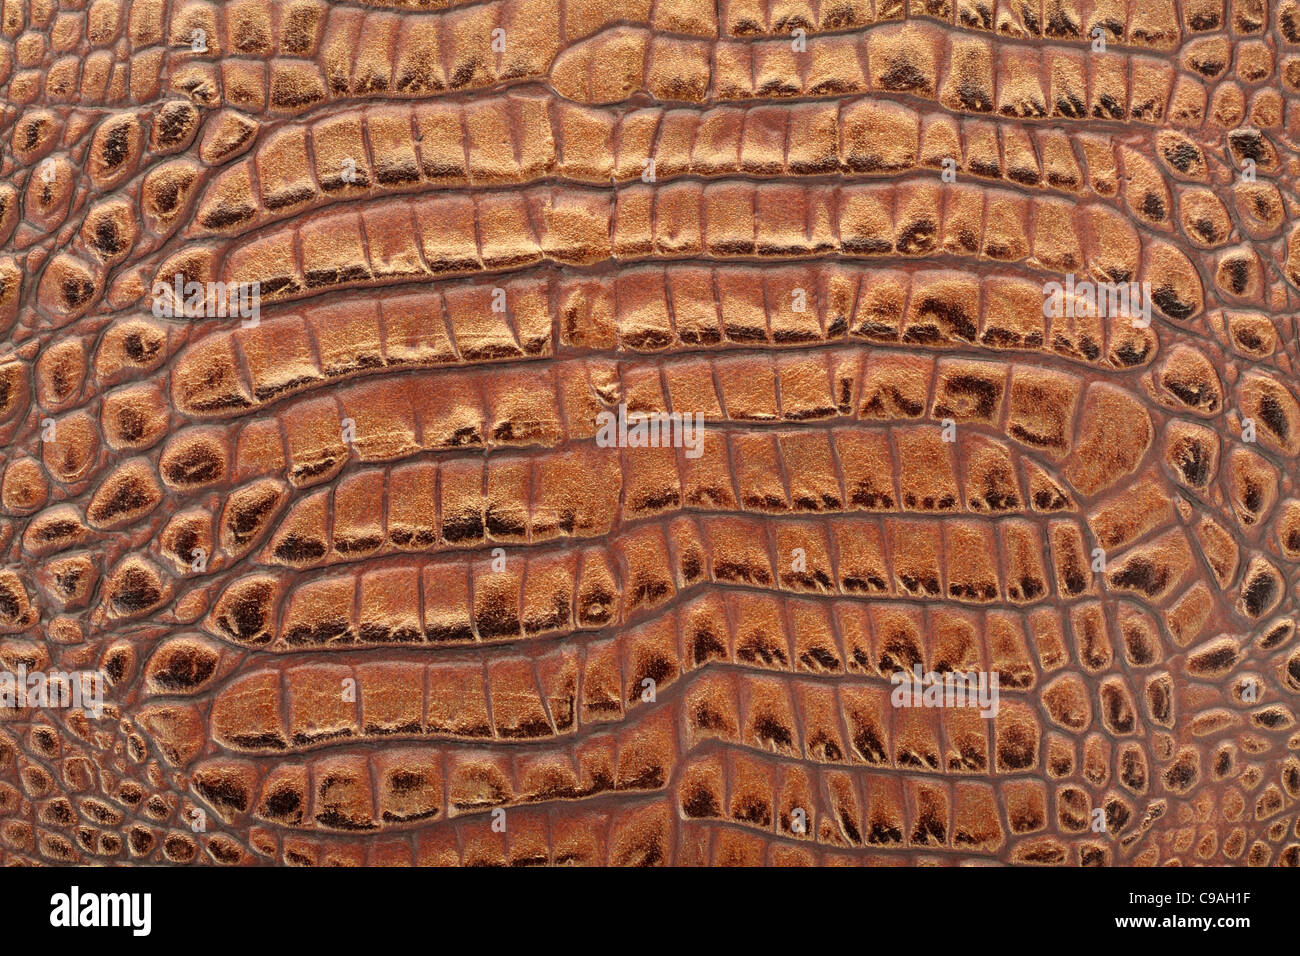 Leather Clothing Stock Photos Images Alamy Cut Engineer Crocodile Safety Steel Genuine Brown Image